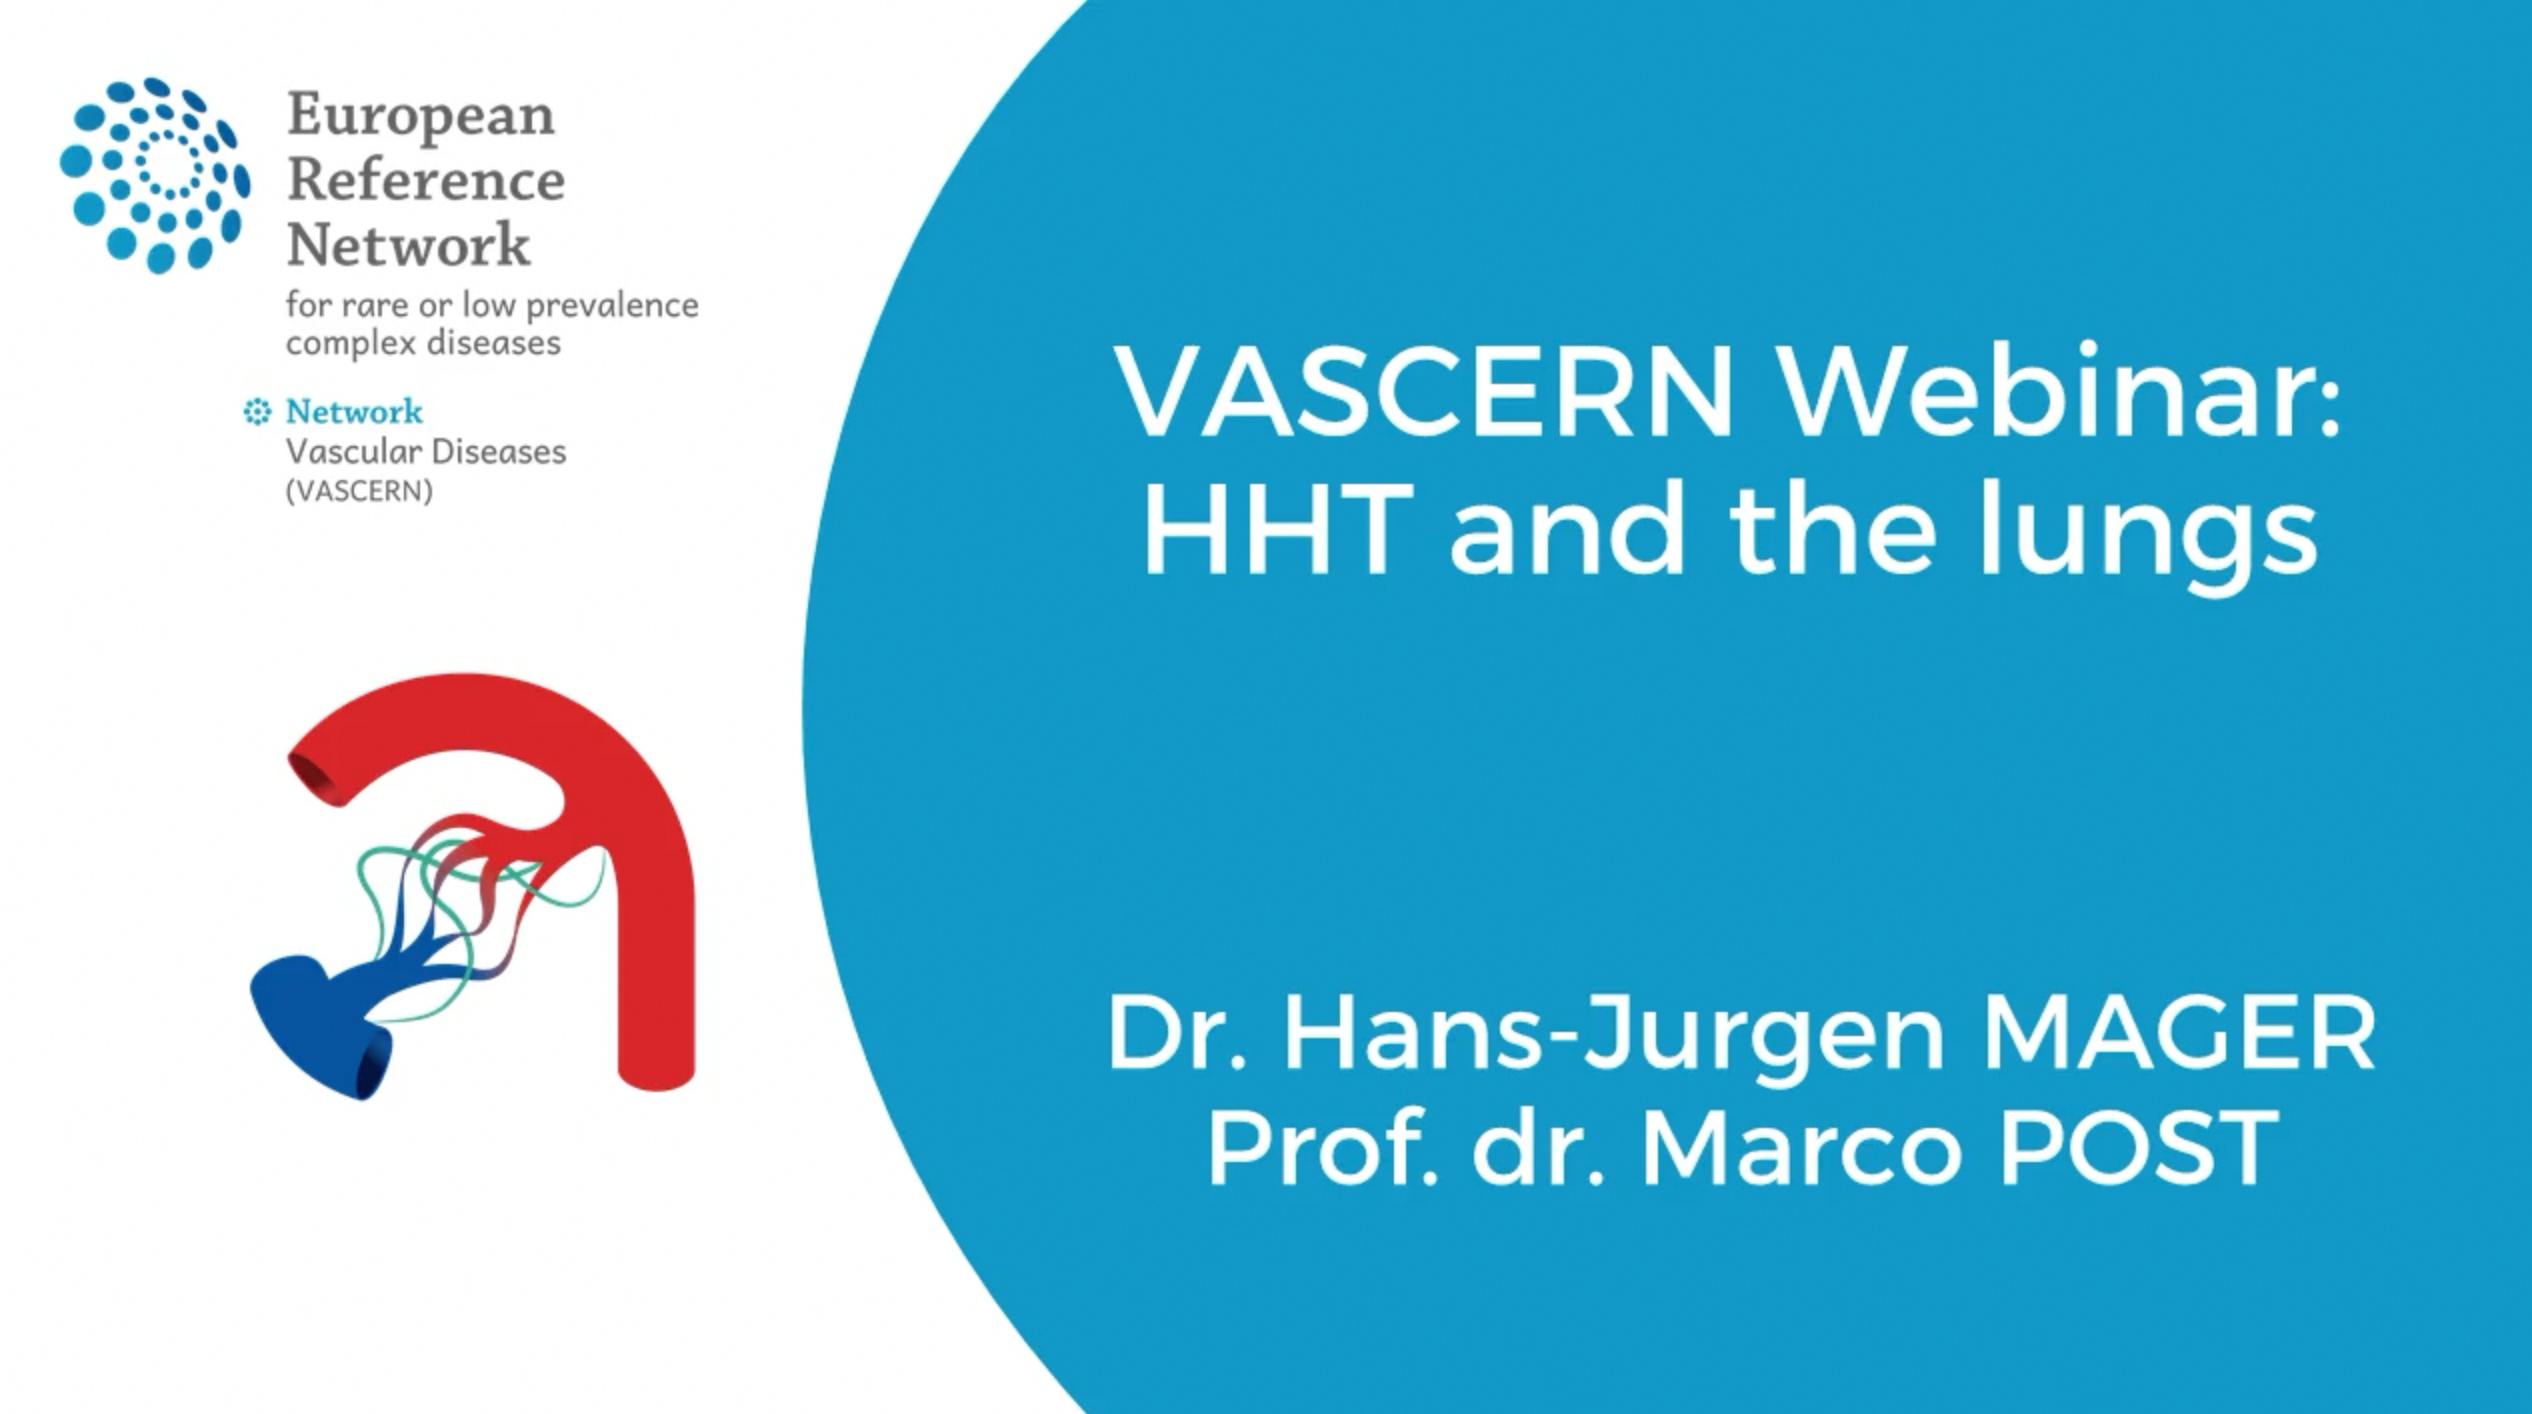 Recording of the VASCERN webinar: HHT and the lungs now available!